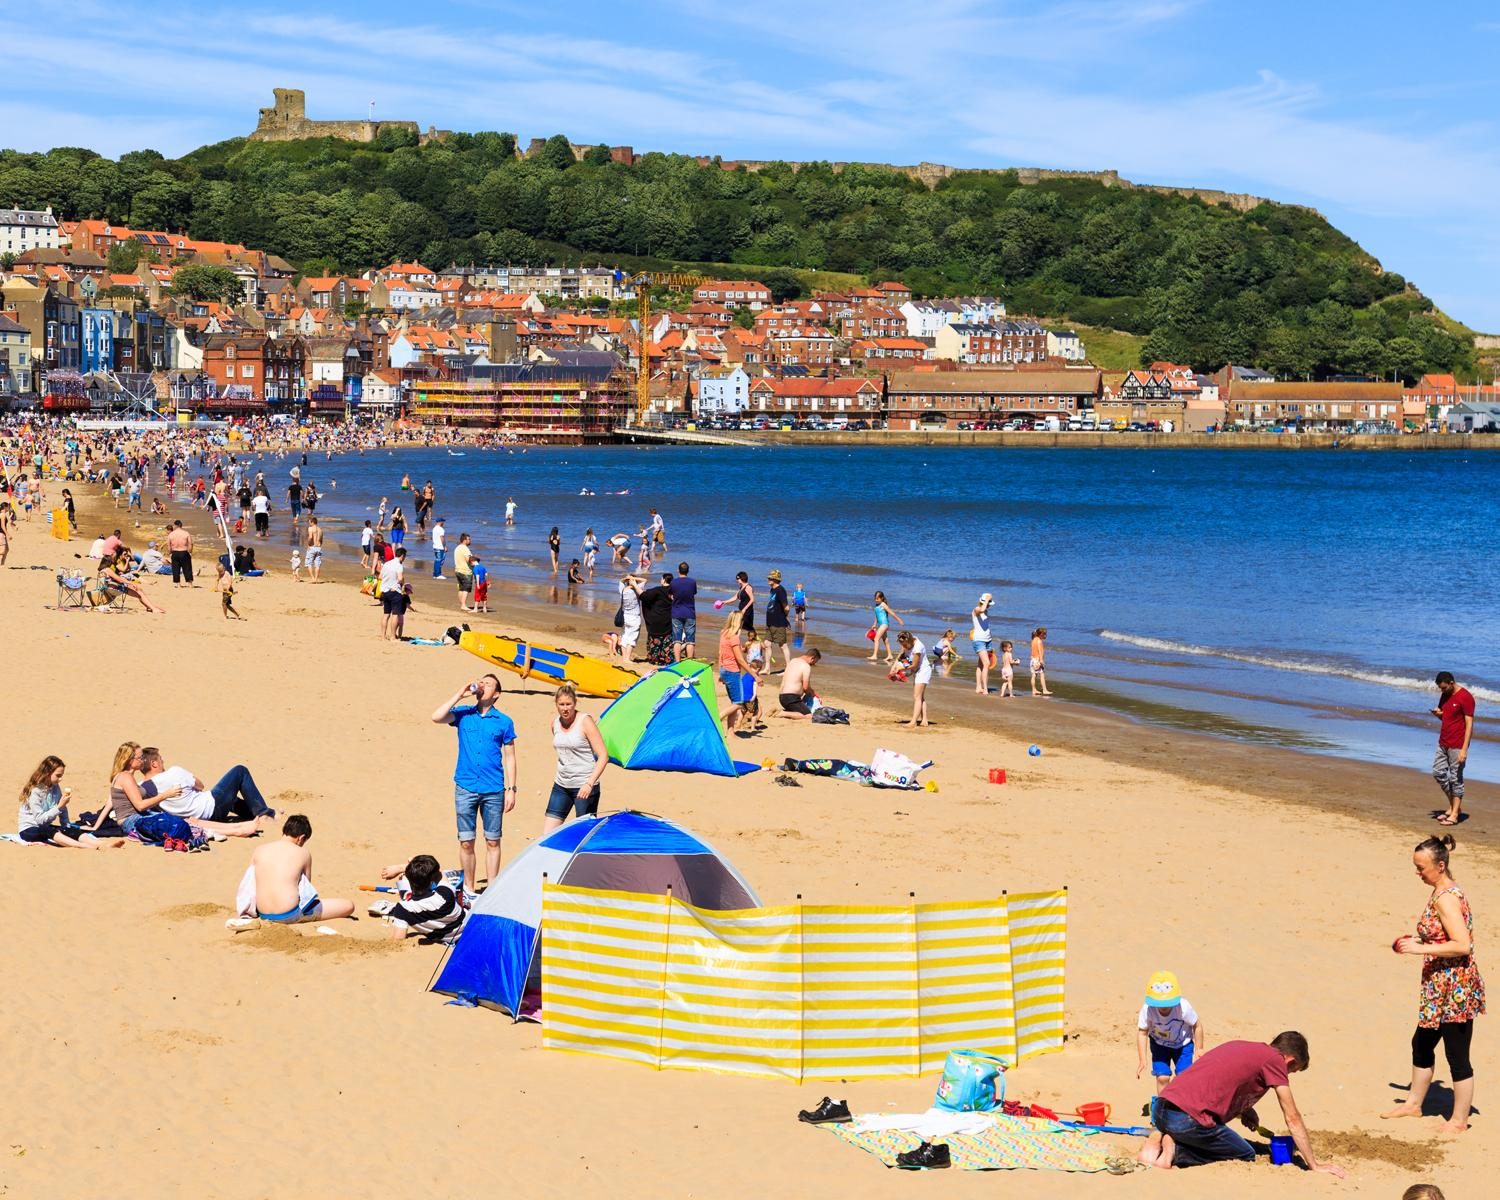 In 2017 there was a record 39.2 million inbound tourism visits to the UK, which was up 4 per cent on the previous year